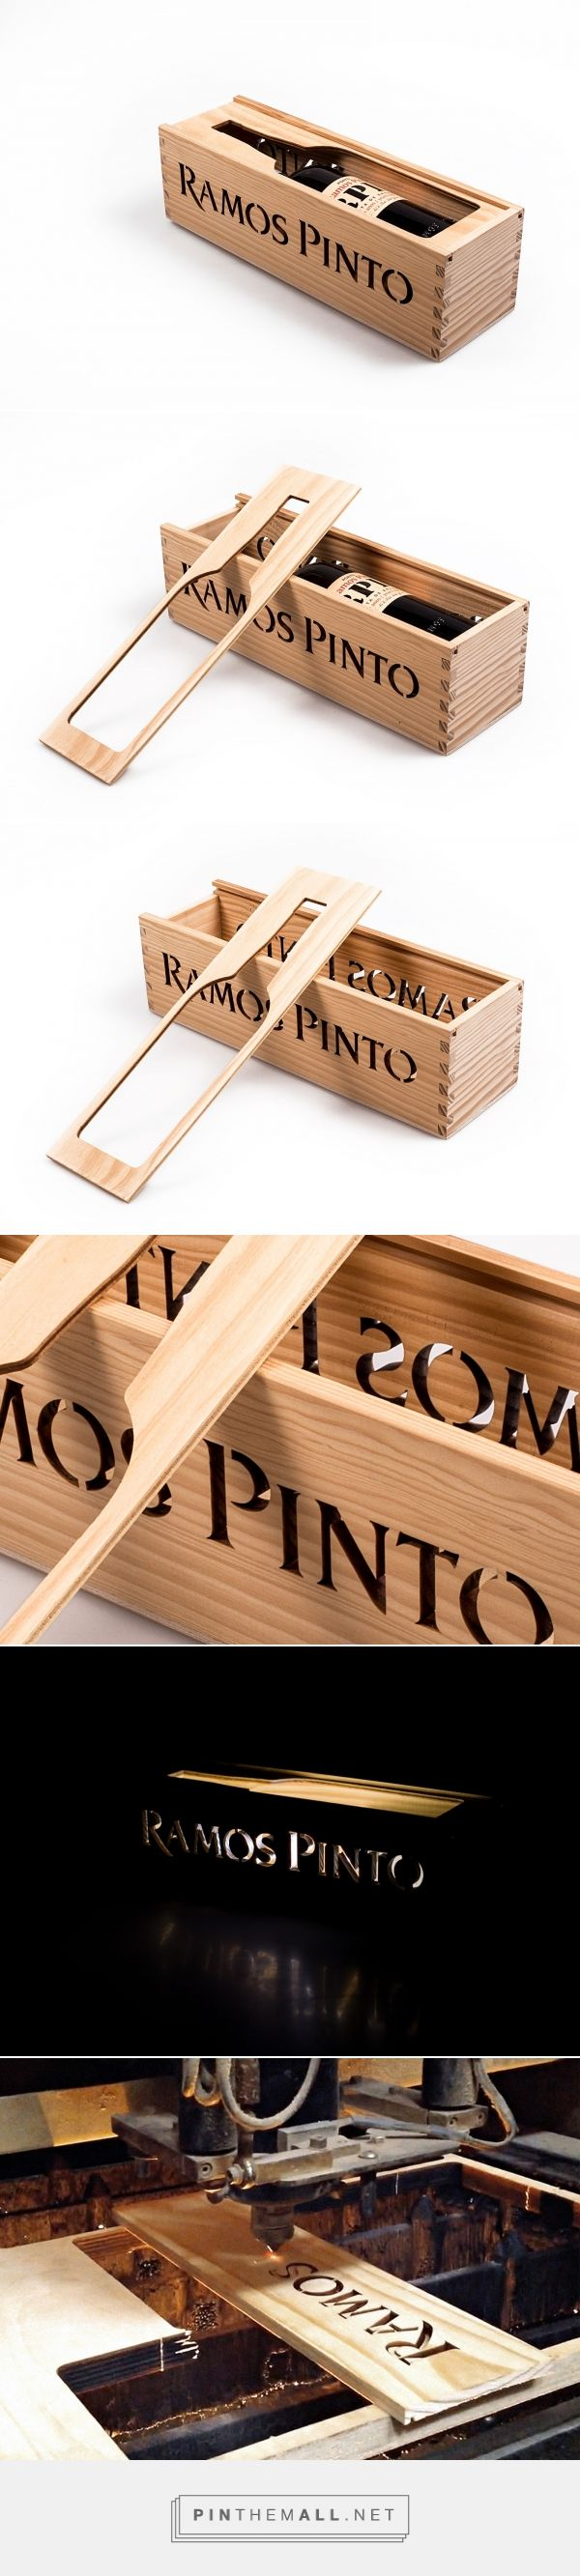 Laser Wood Box - Packaging of the World - Creative Package Design Gallery - http://www.packagingoftheworld.com/2017/06/laser-wood-box.html